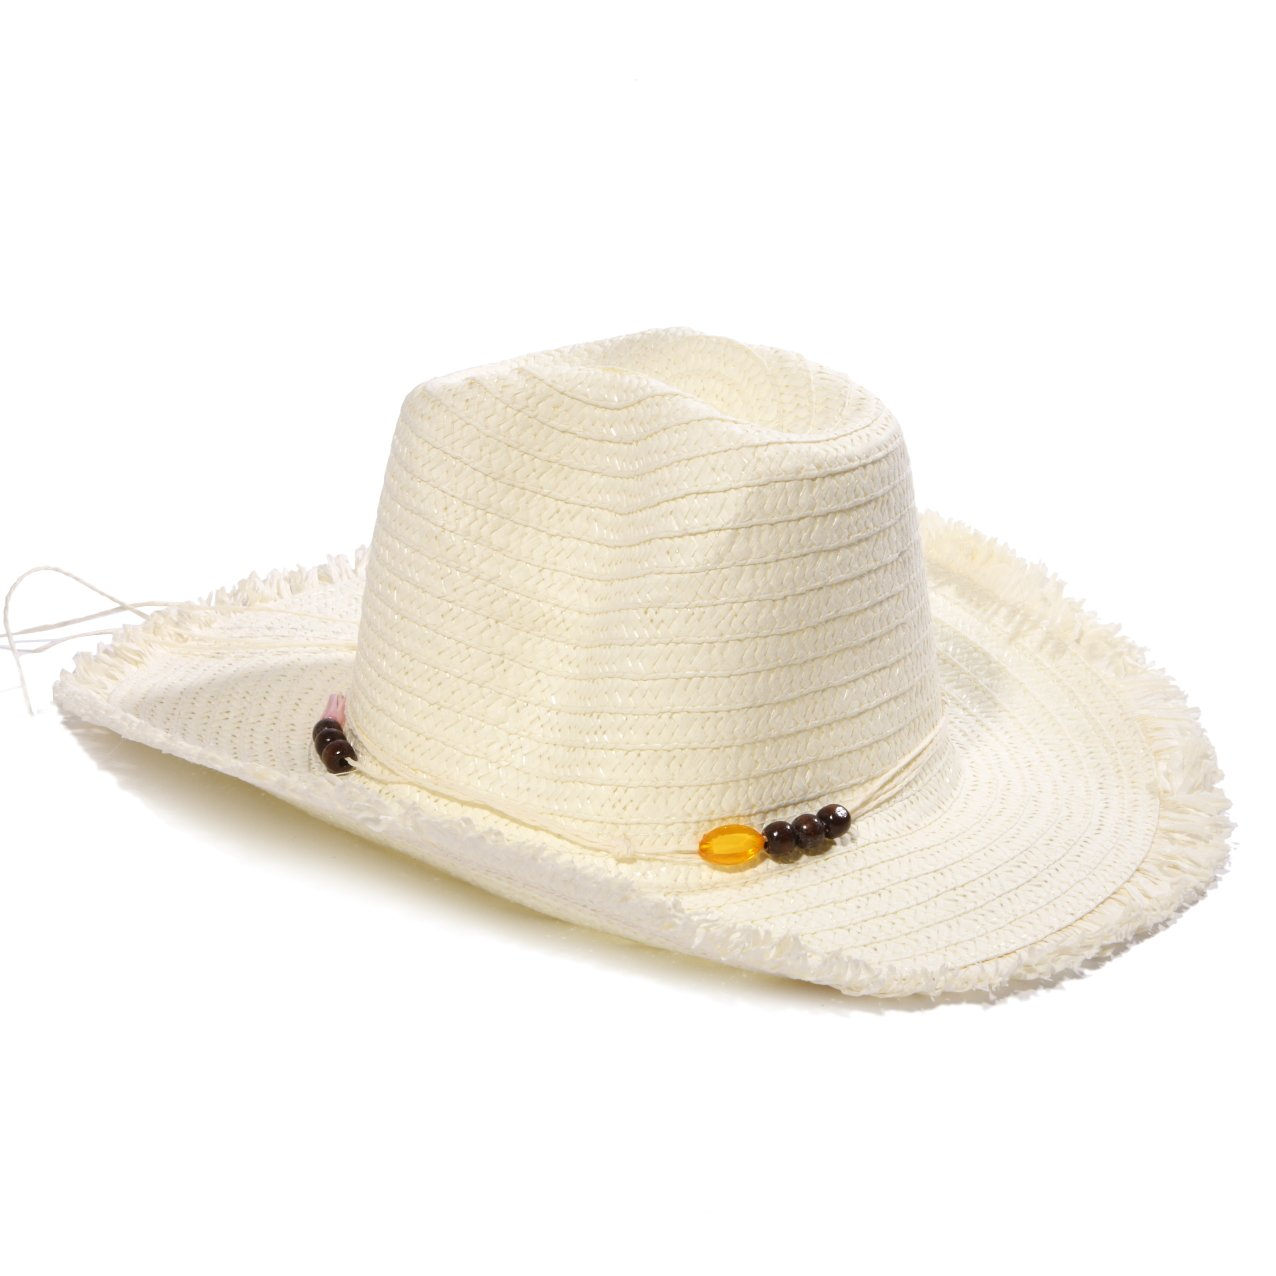 492fbd9eb9c0b Ladies Summer Sun Trilby Straw Hat with Beaded Detailing